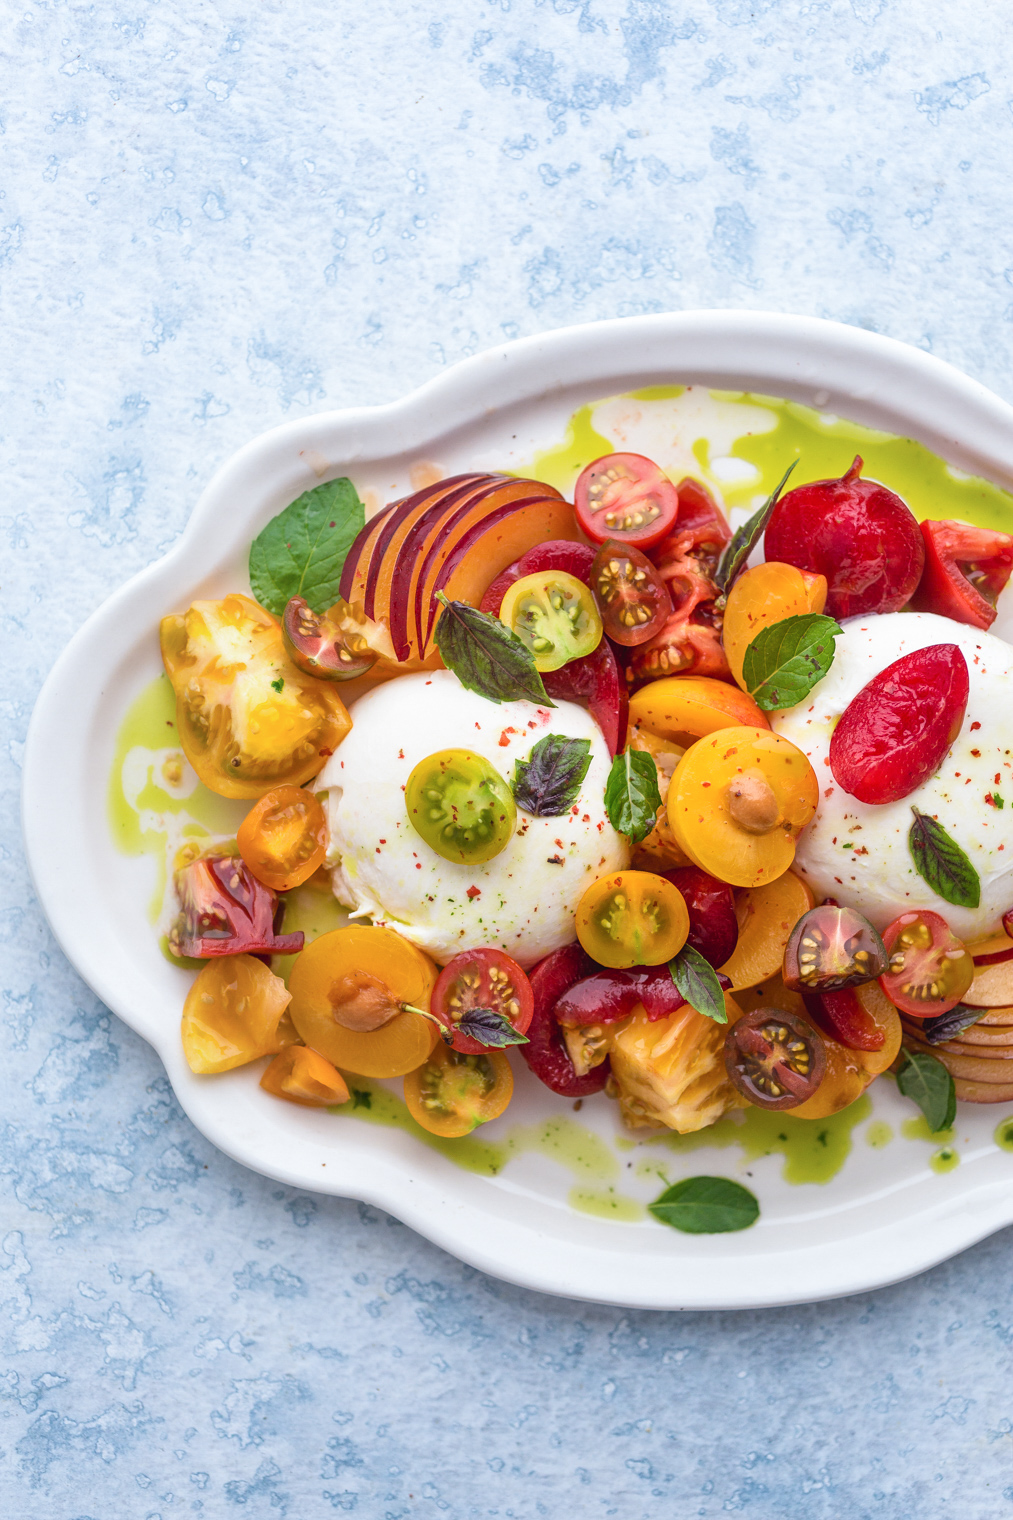 Burrata caprese with Plums Tomatoes and Mint-Basil Oil on white serving platter